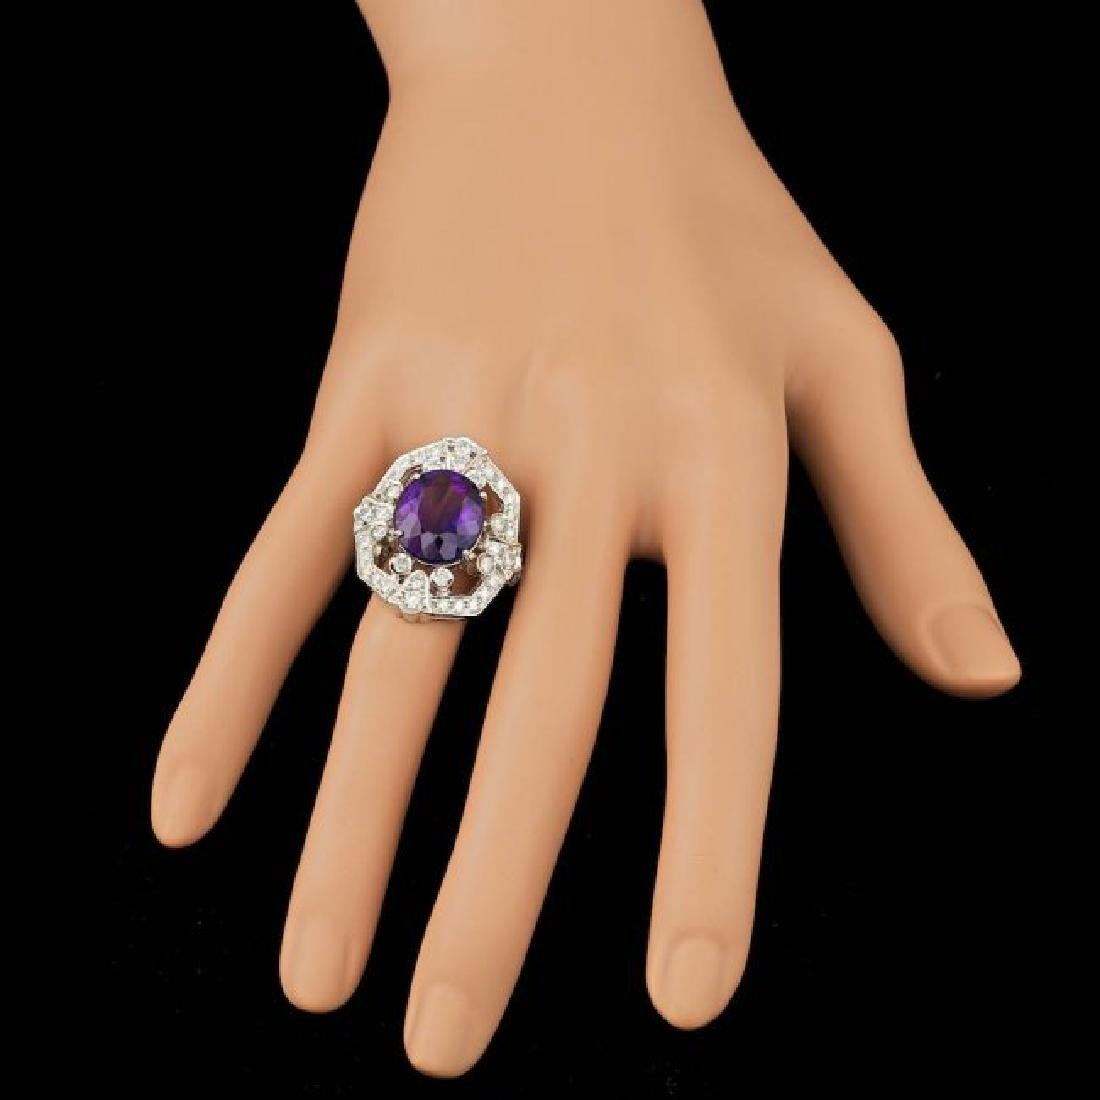 14k Gold 7.50ct Amethyst 2.60ct Diamond Ring - 4